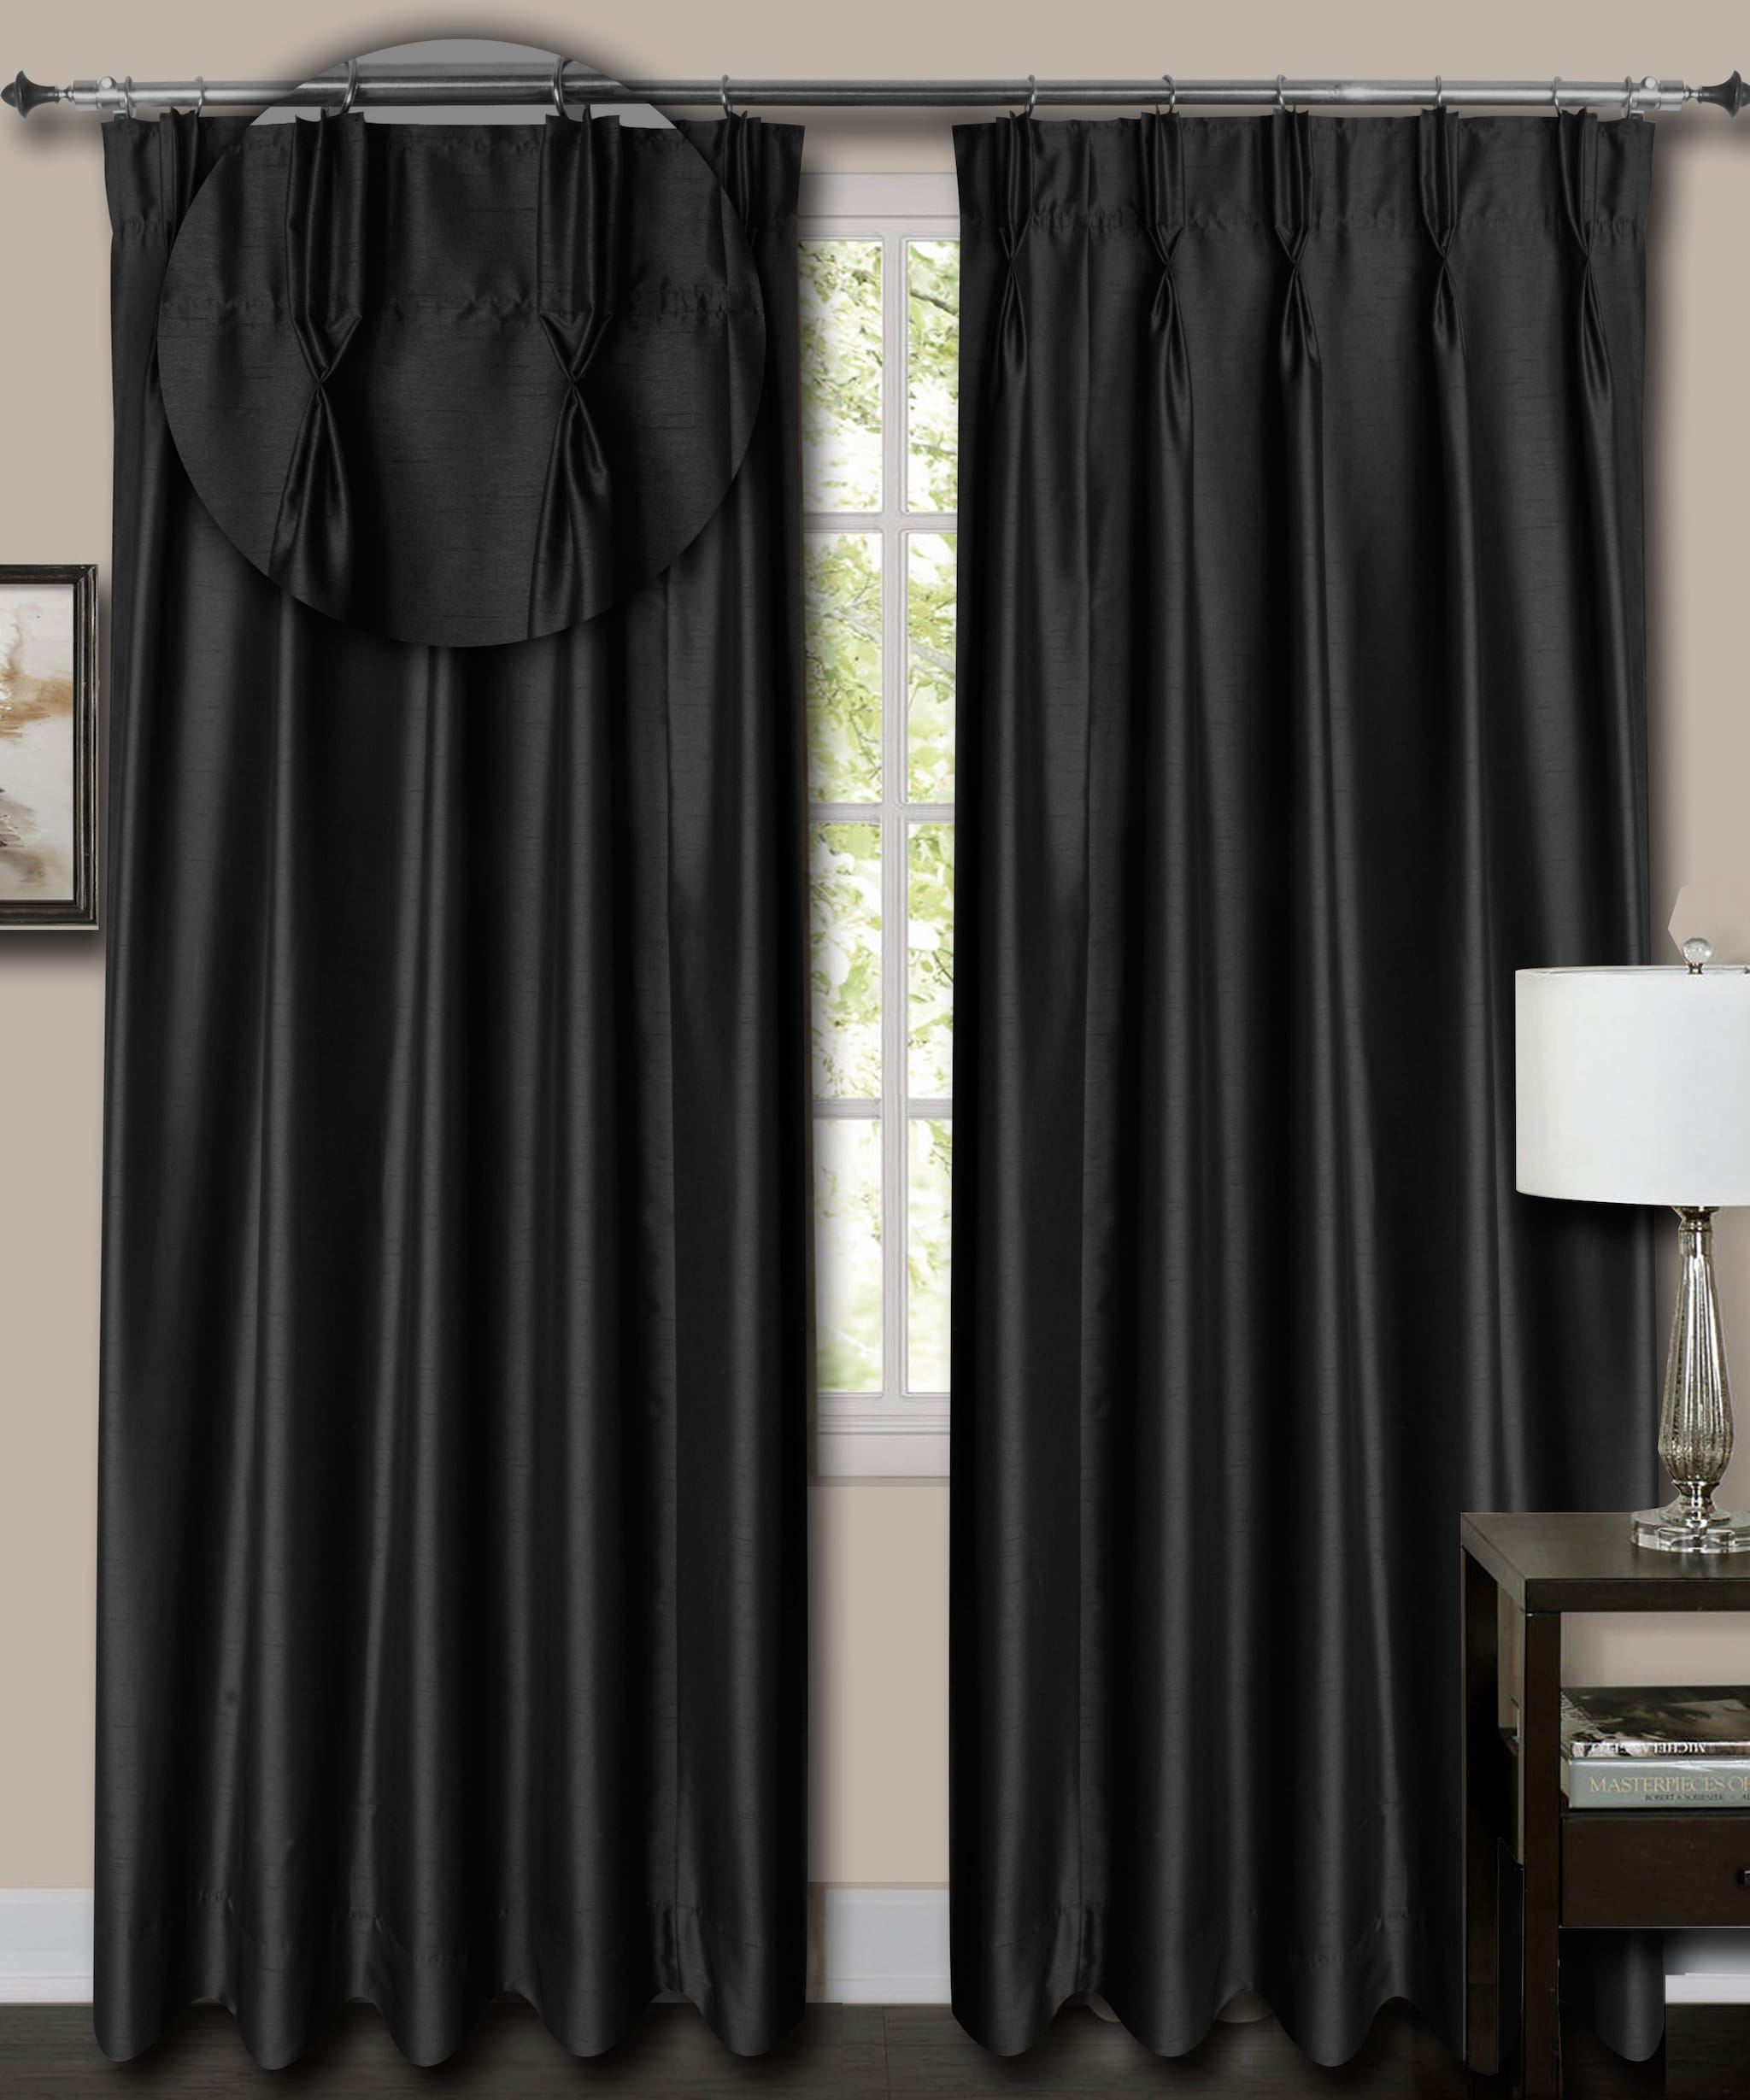 "French Pleat Top Black Faux Silk Dupioni Curtains. (78"" Wide,14 Feet Long,Thick Lining)"